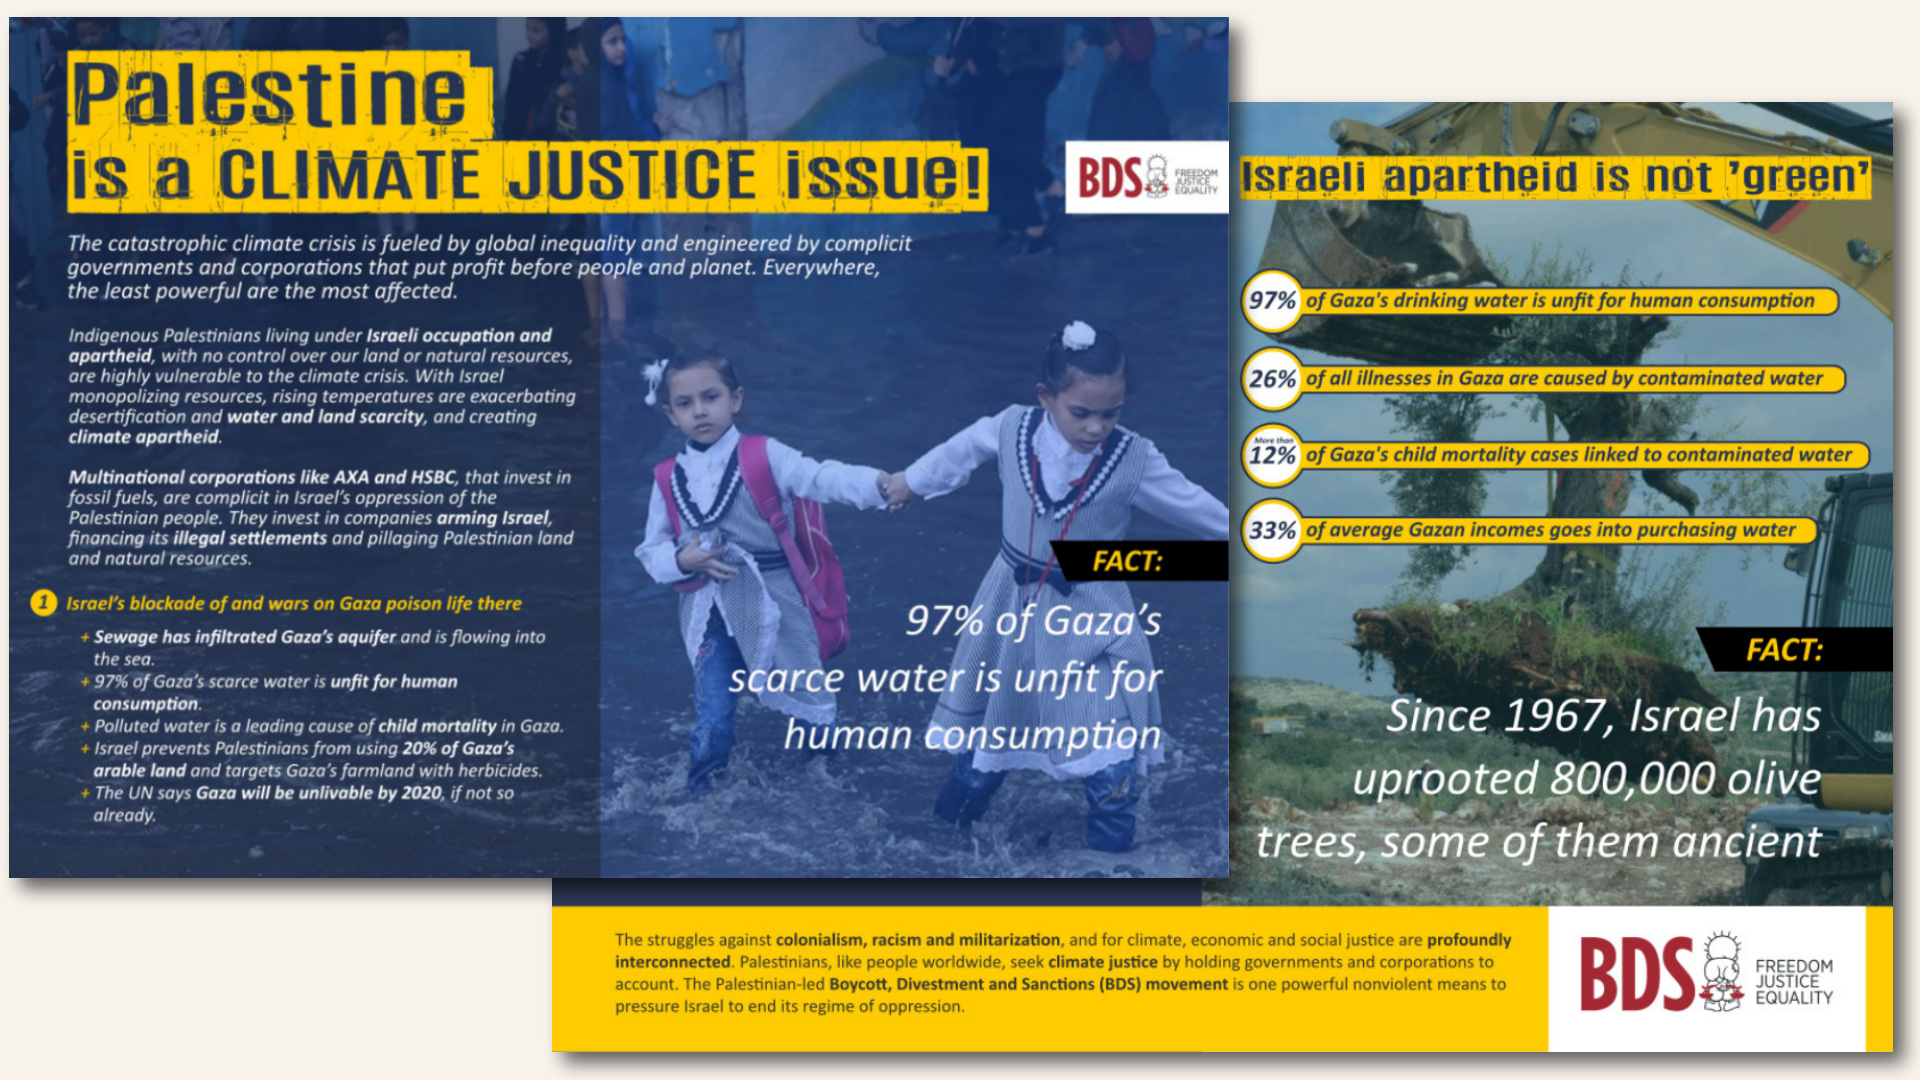 """Palestine is a climate justice issue - Israeli apartheid is not """"green"""""""